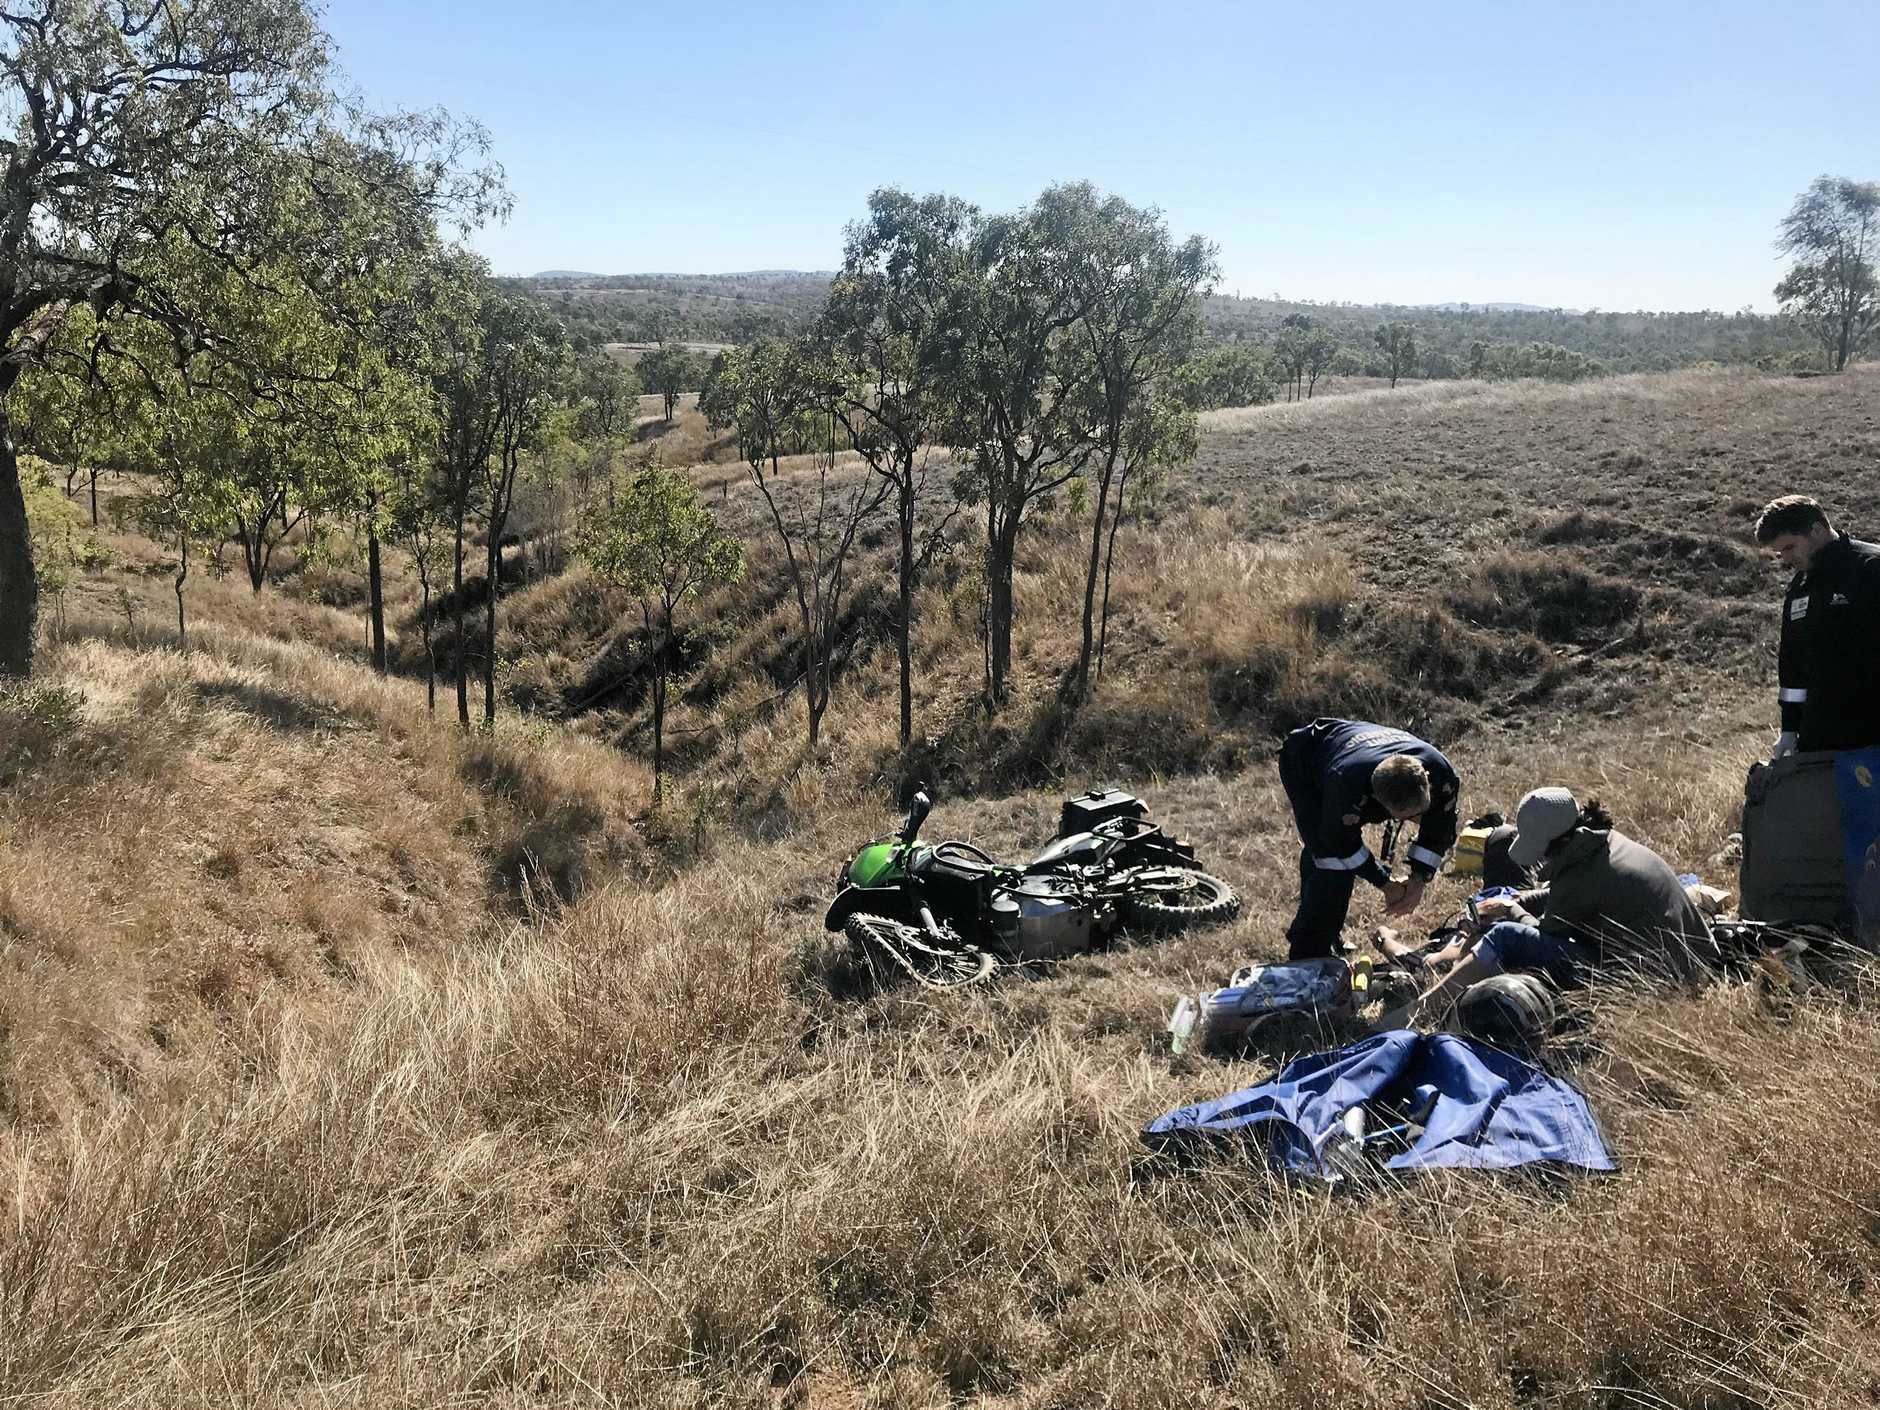 Paramedics treat a seriously injured rider after a motorbike accident   on the Glenroy Marlborough road approximately 30kms south of Marlborough.